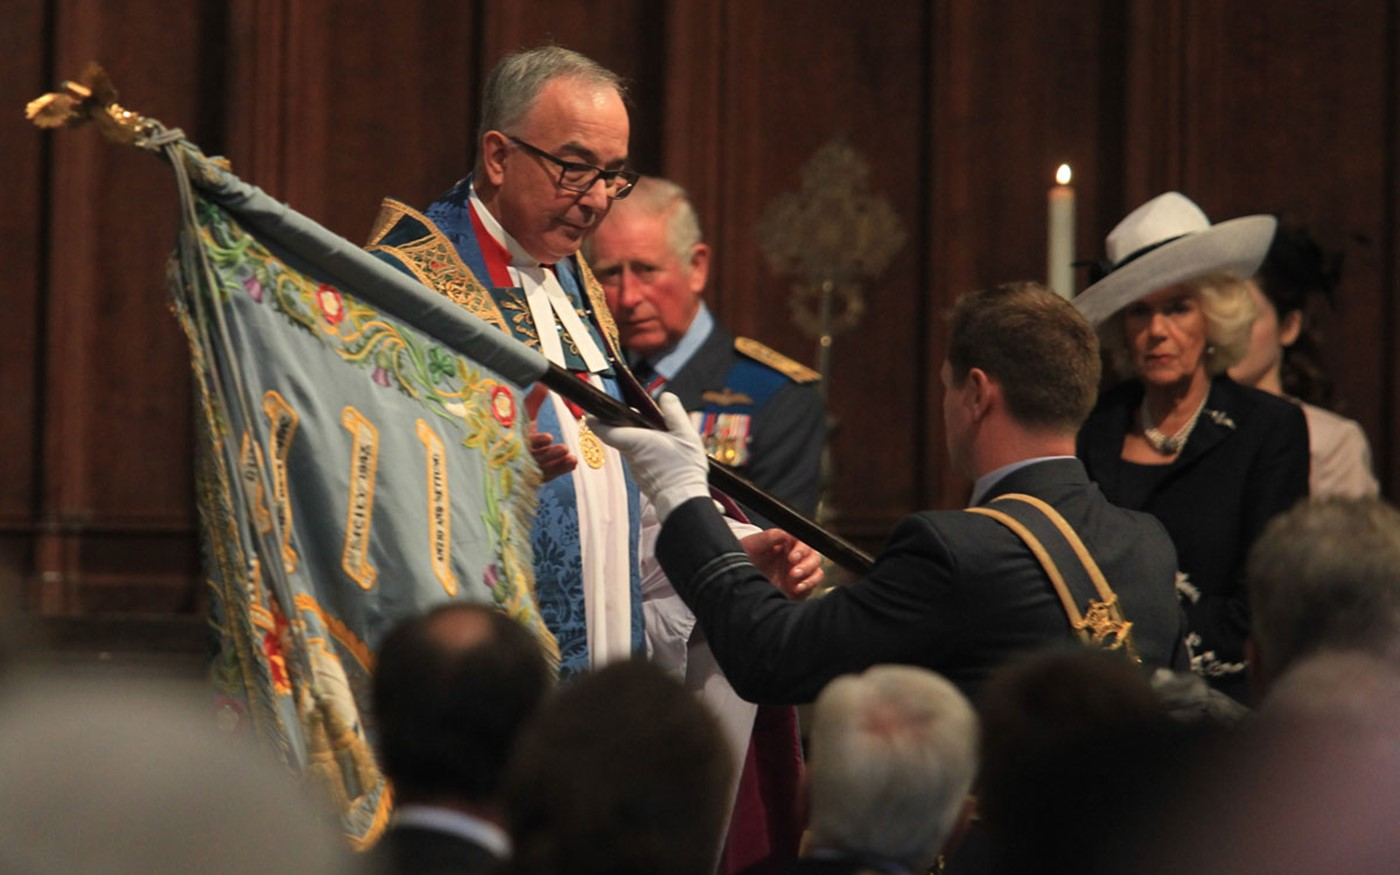 The standard of No. 72 Squadron is received by The Dean